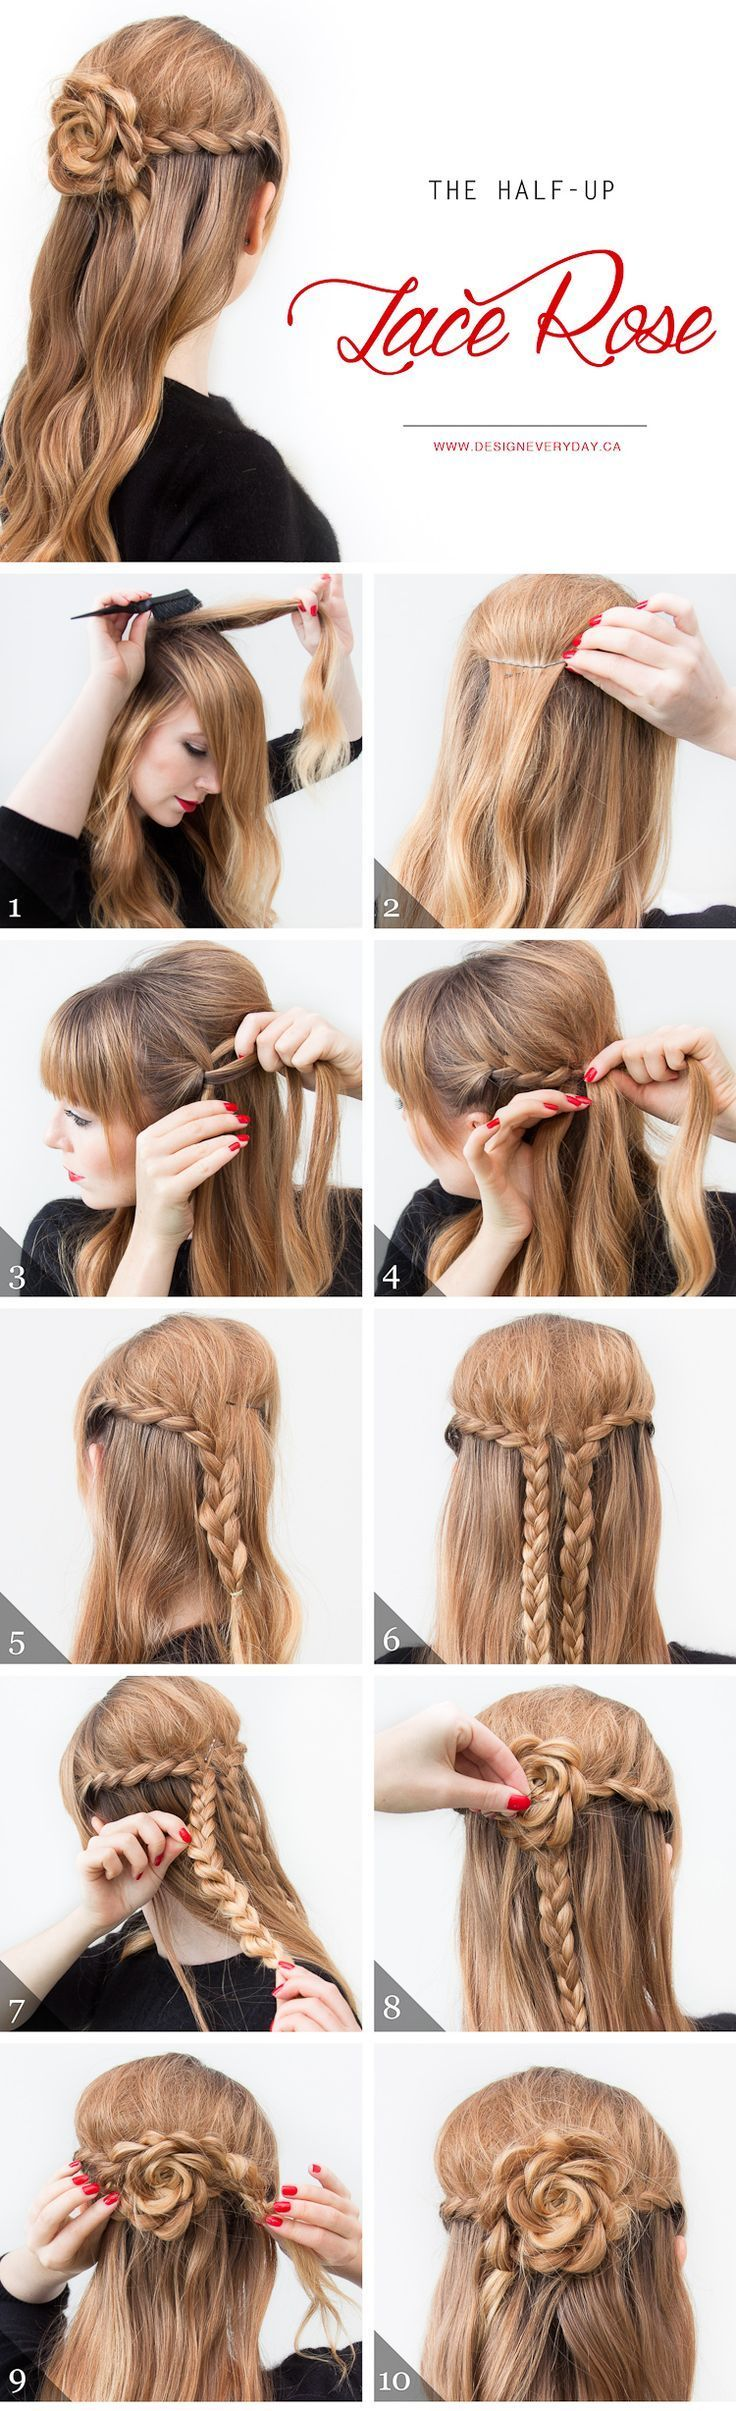 The half up lace rose hairstyle pictures photos and images for